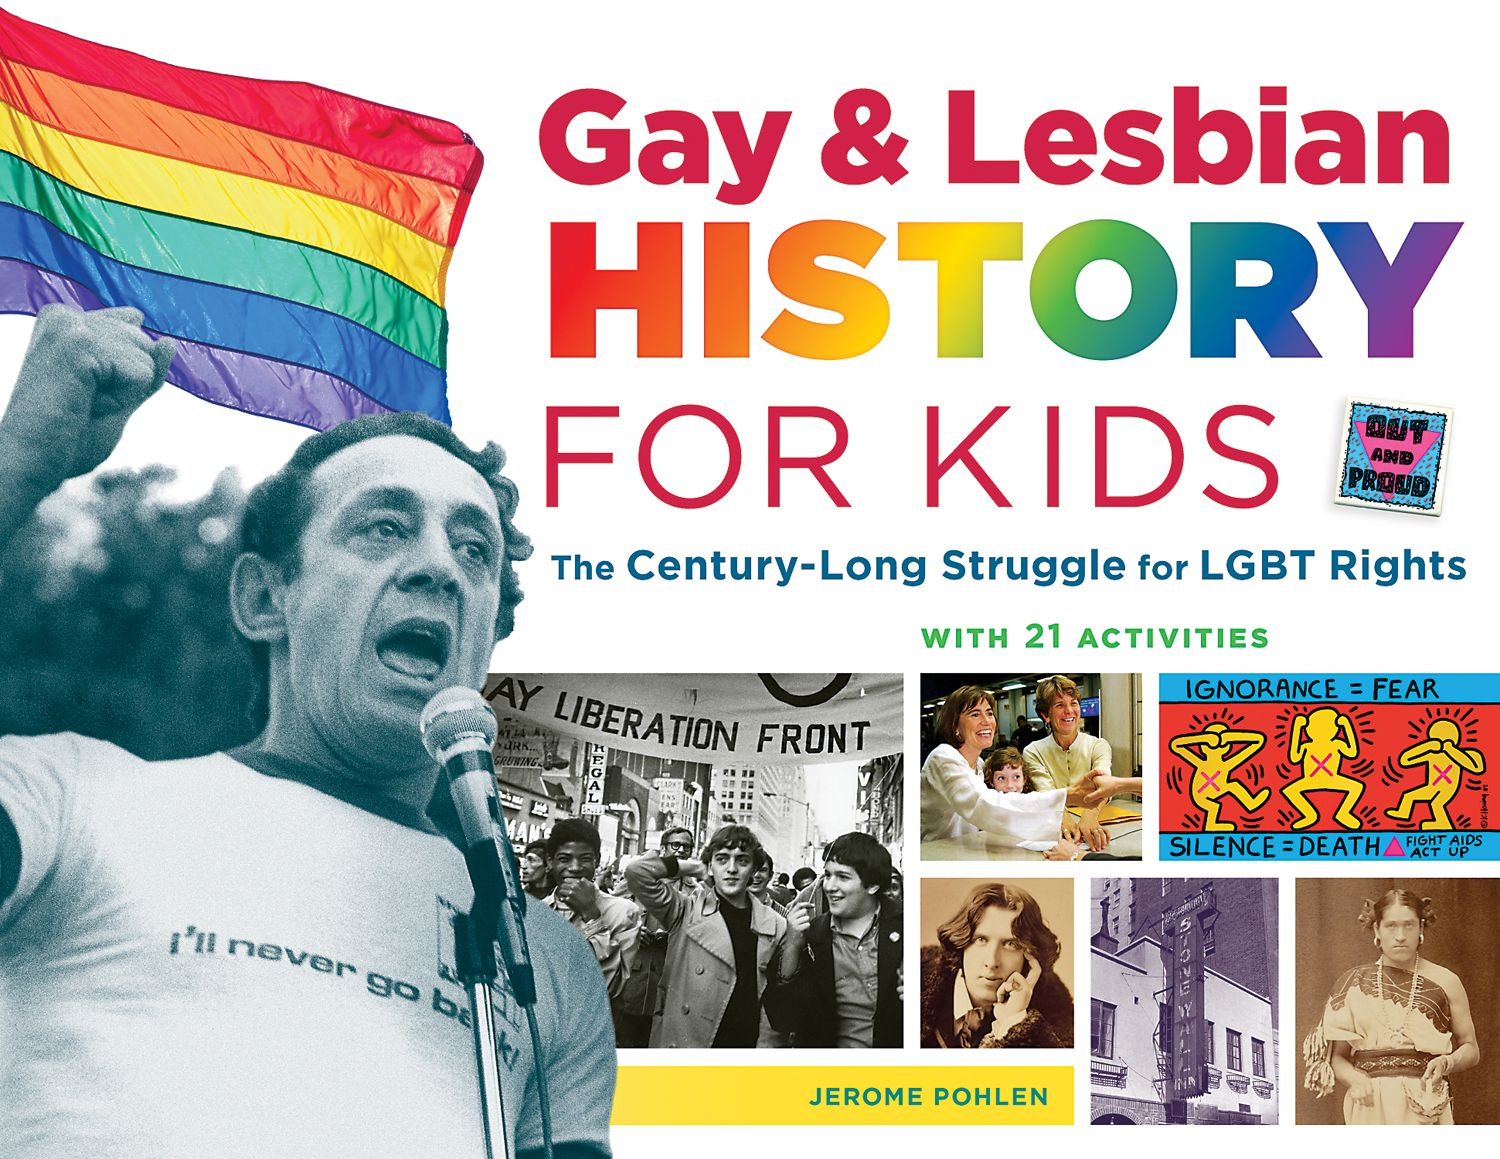 Five Children's Books To Get Your Family Ready For Pride